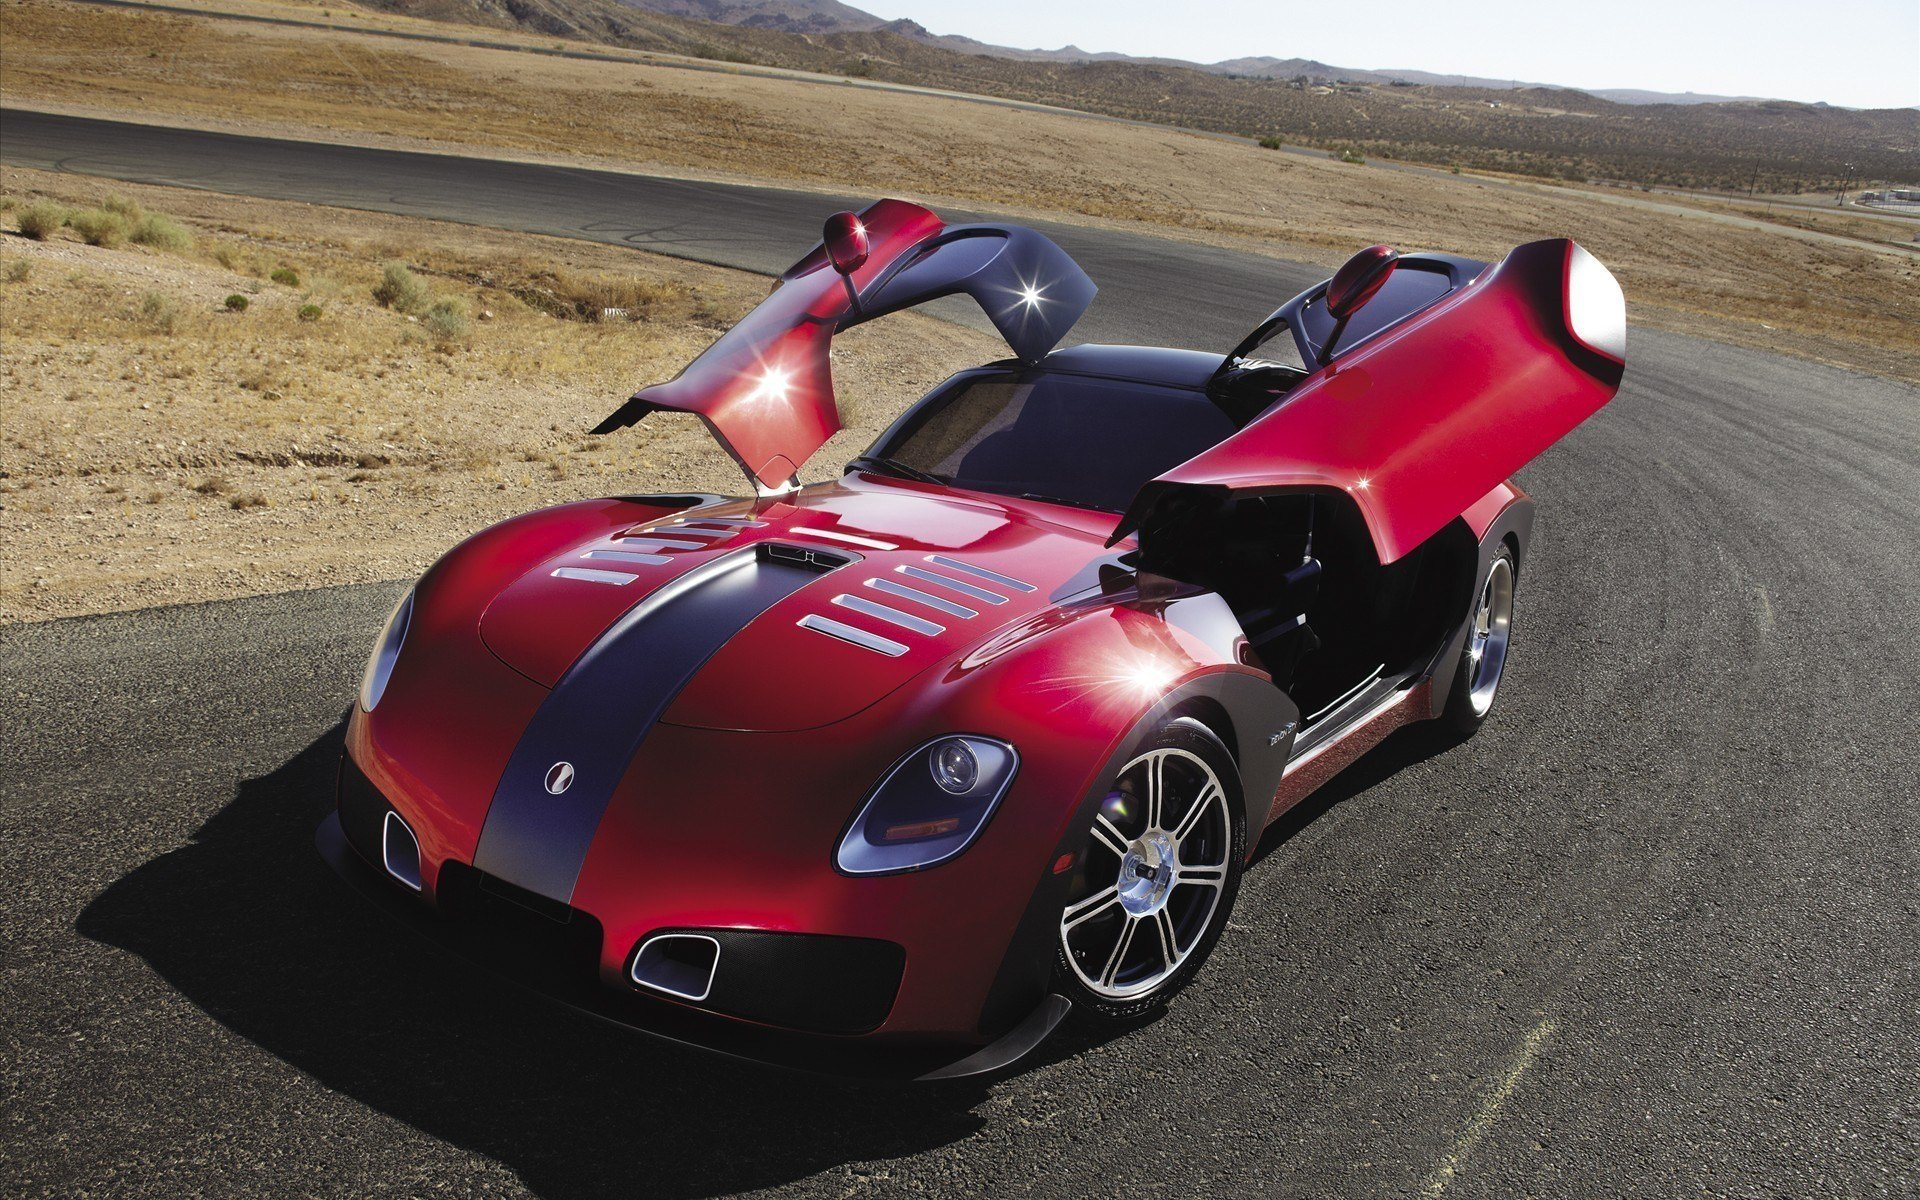 New Red Car Devon Gtx Cornering Wallpapers And Images On This Month